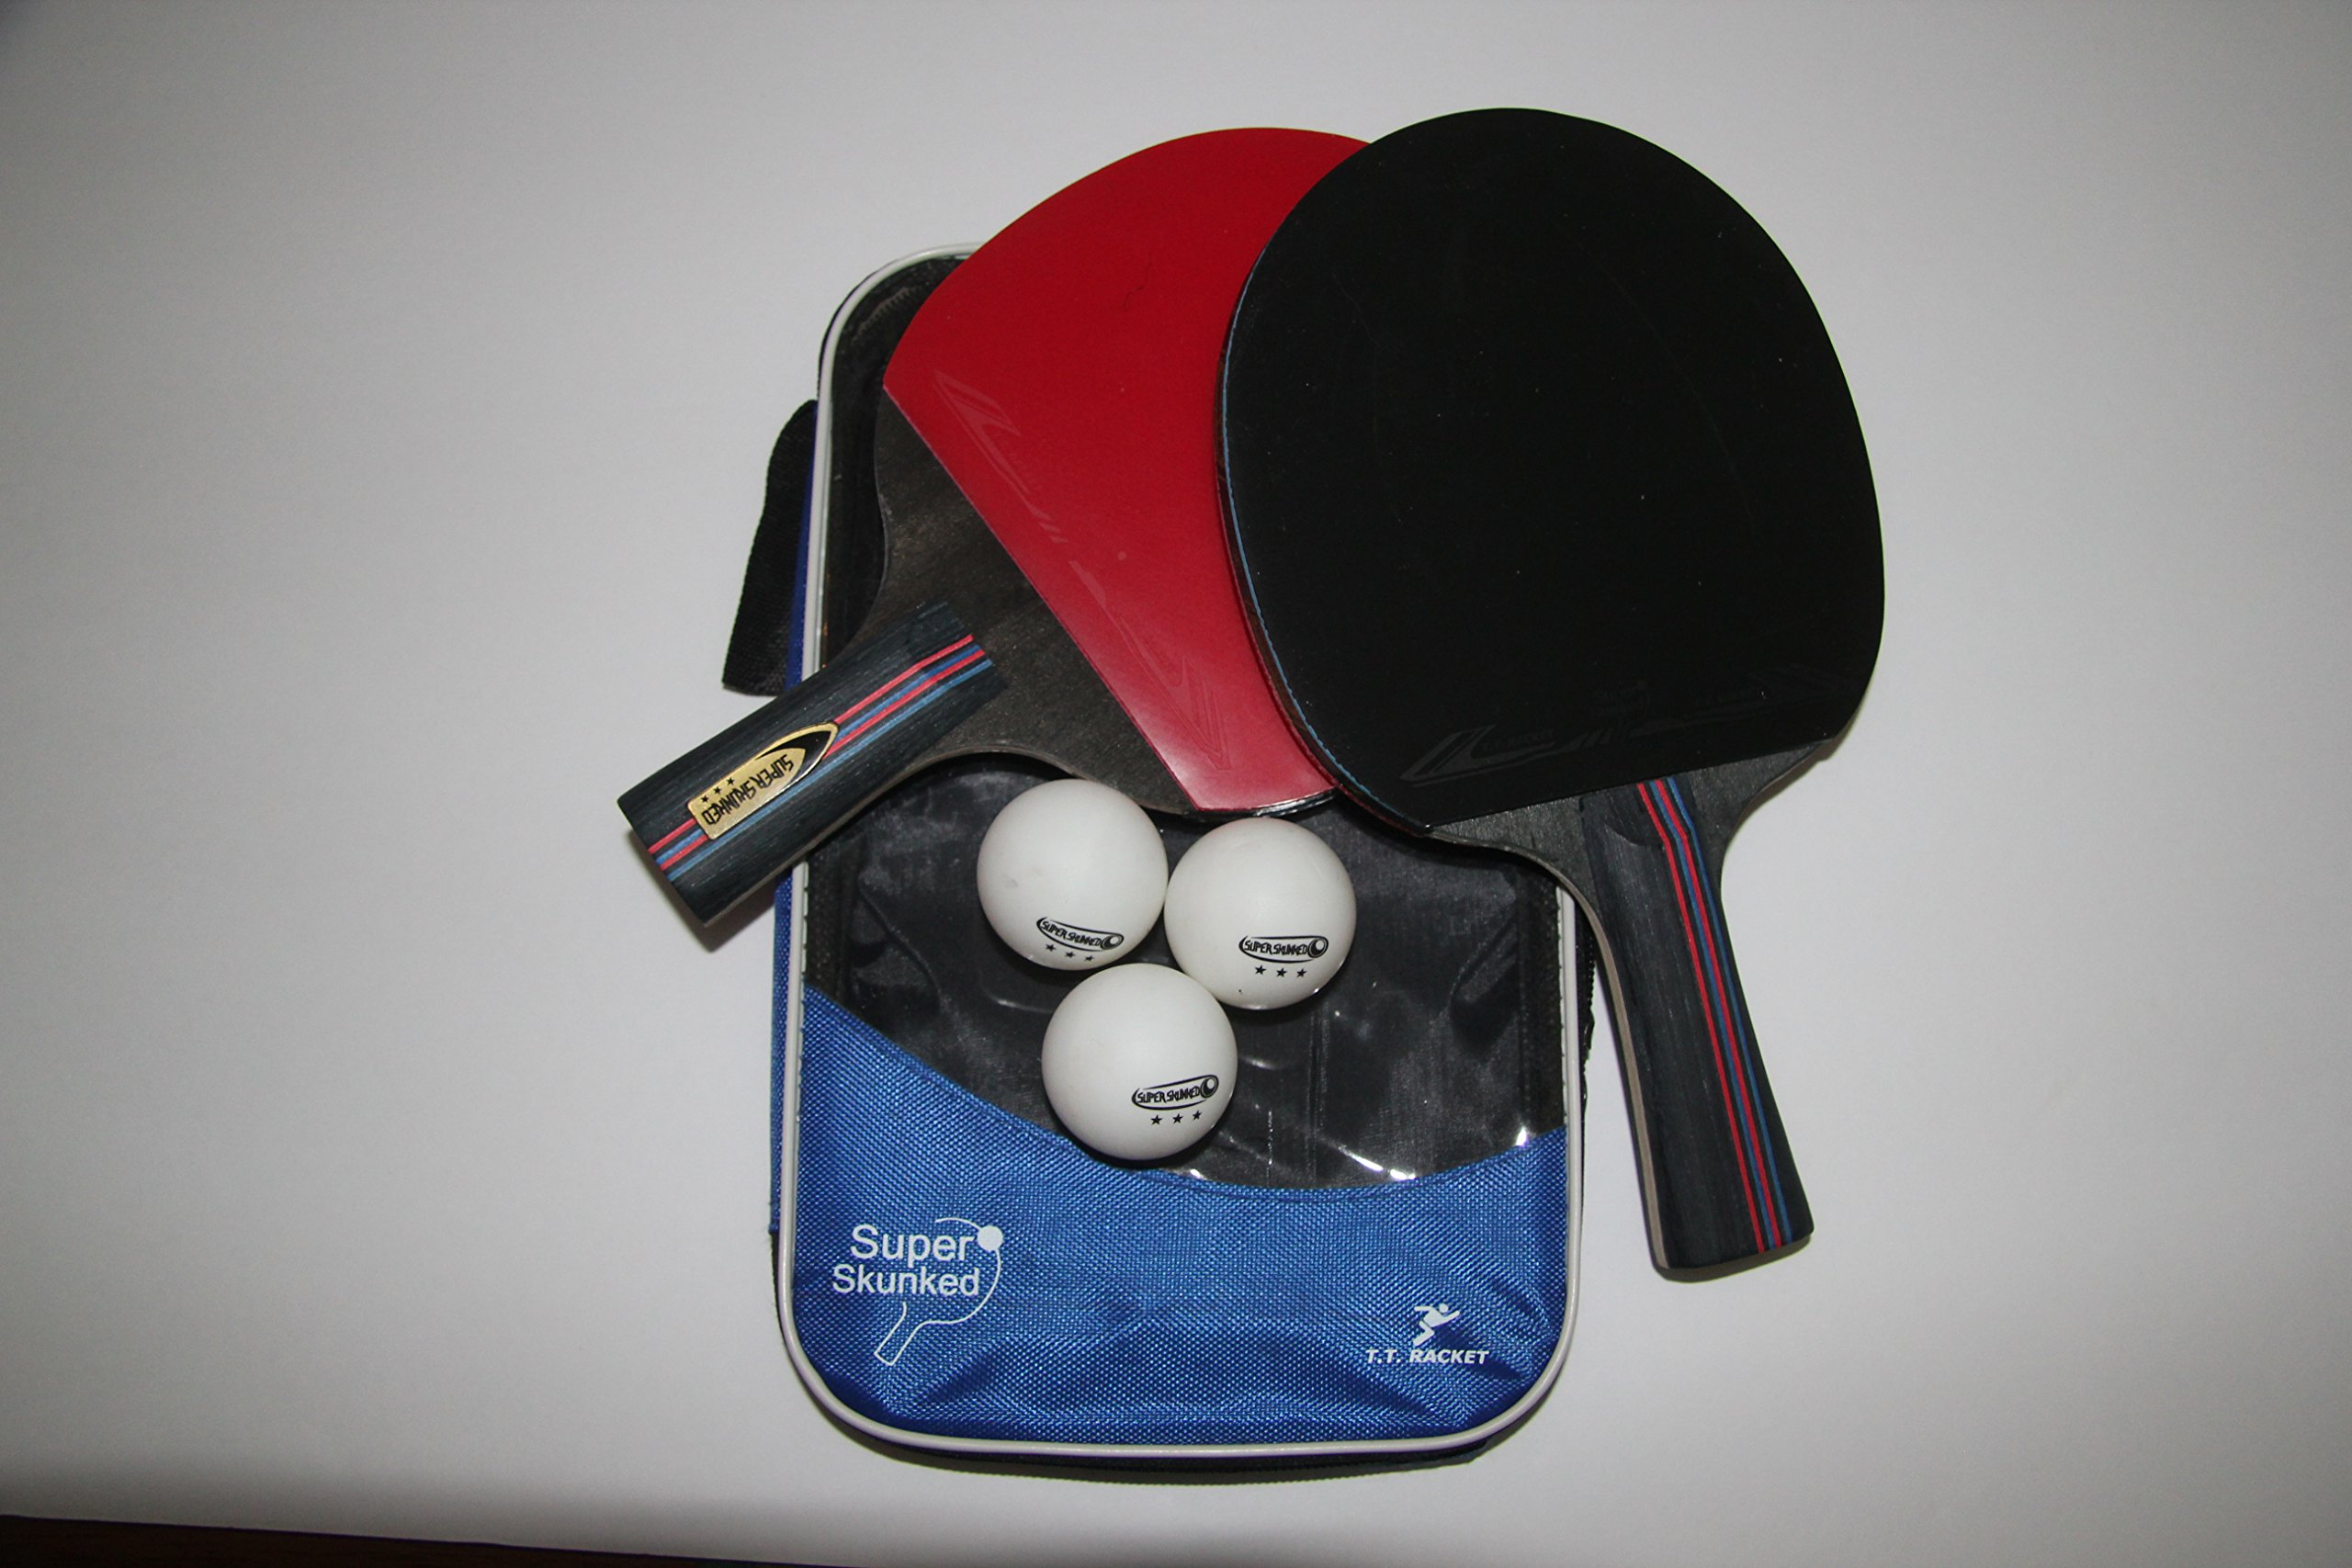 Super Skunked ping pong paddle/racket set- professional wood set with carry case plus 3 table tennis balls- practice/training- ideal for home/professional games- portable- soft sponge rubber- pro pack